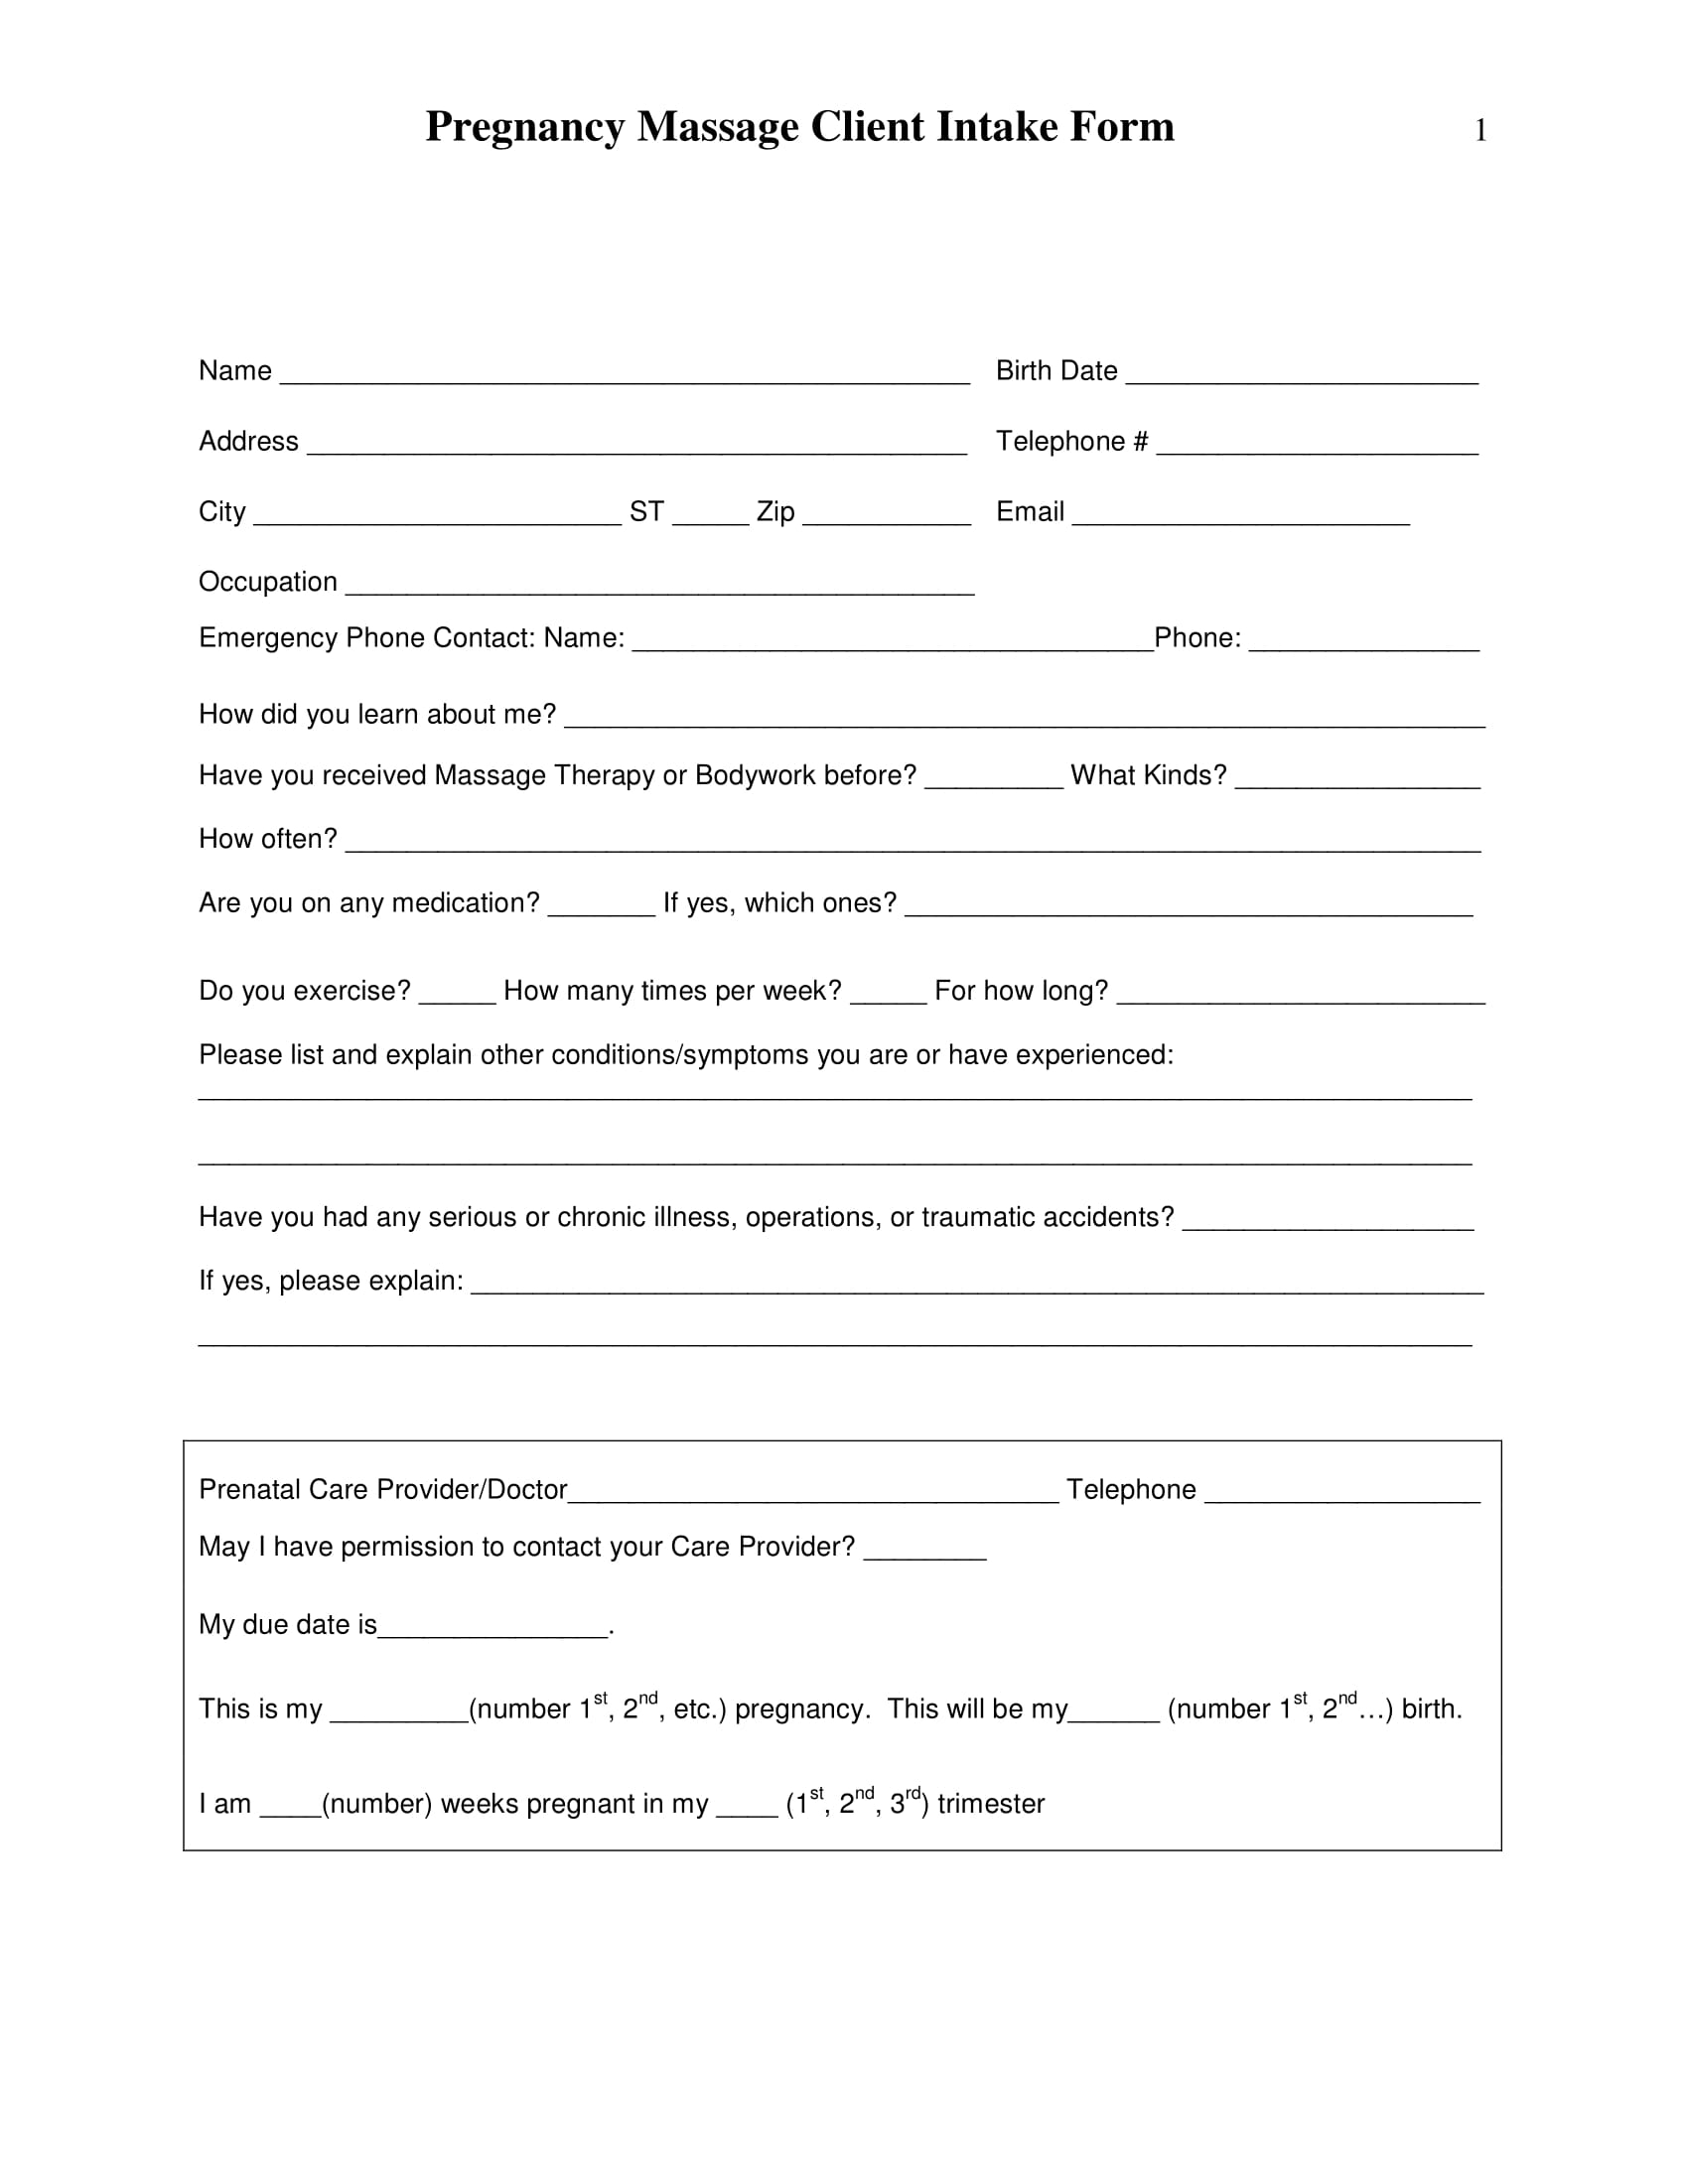 pregnancy massage client intake form 1